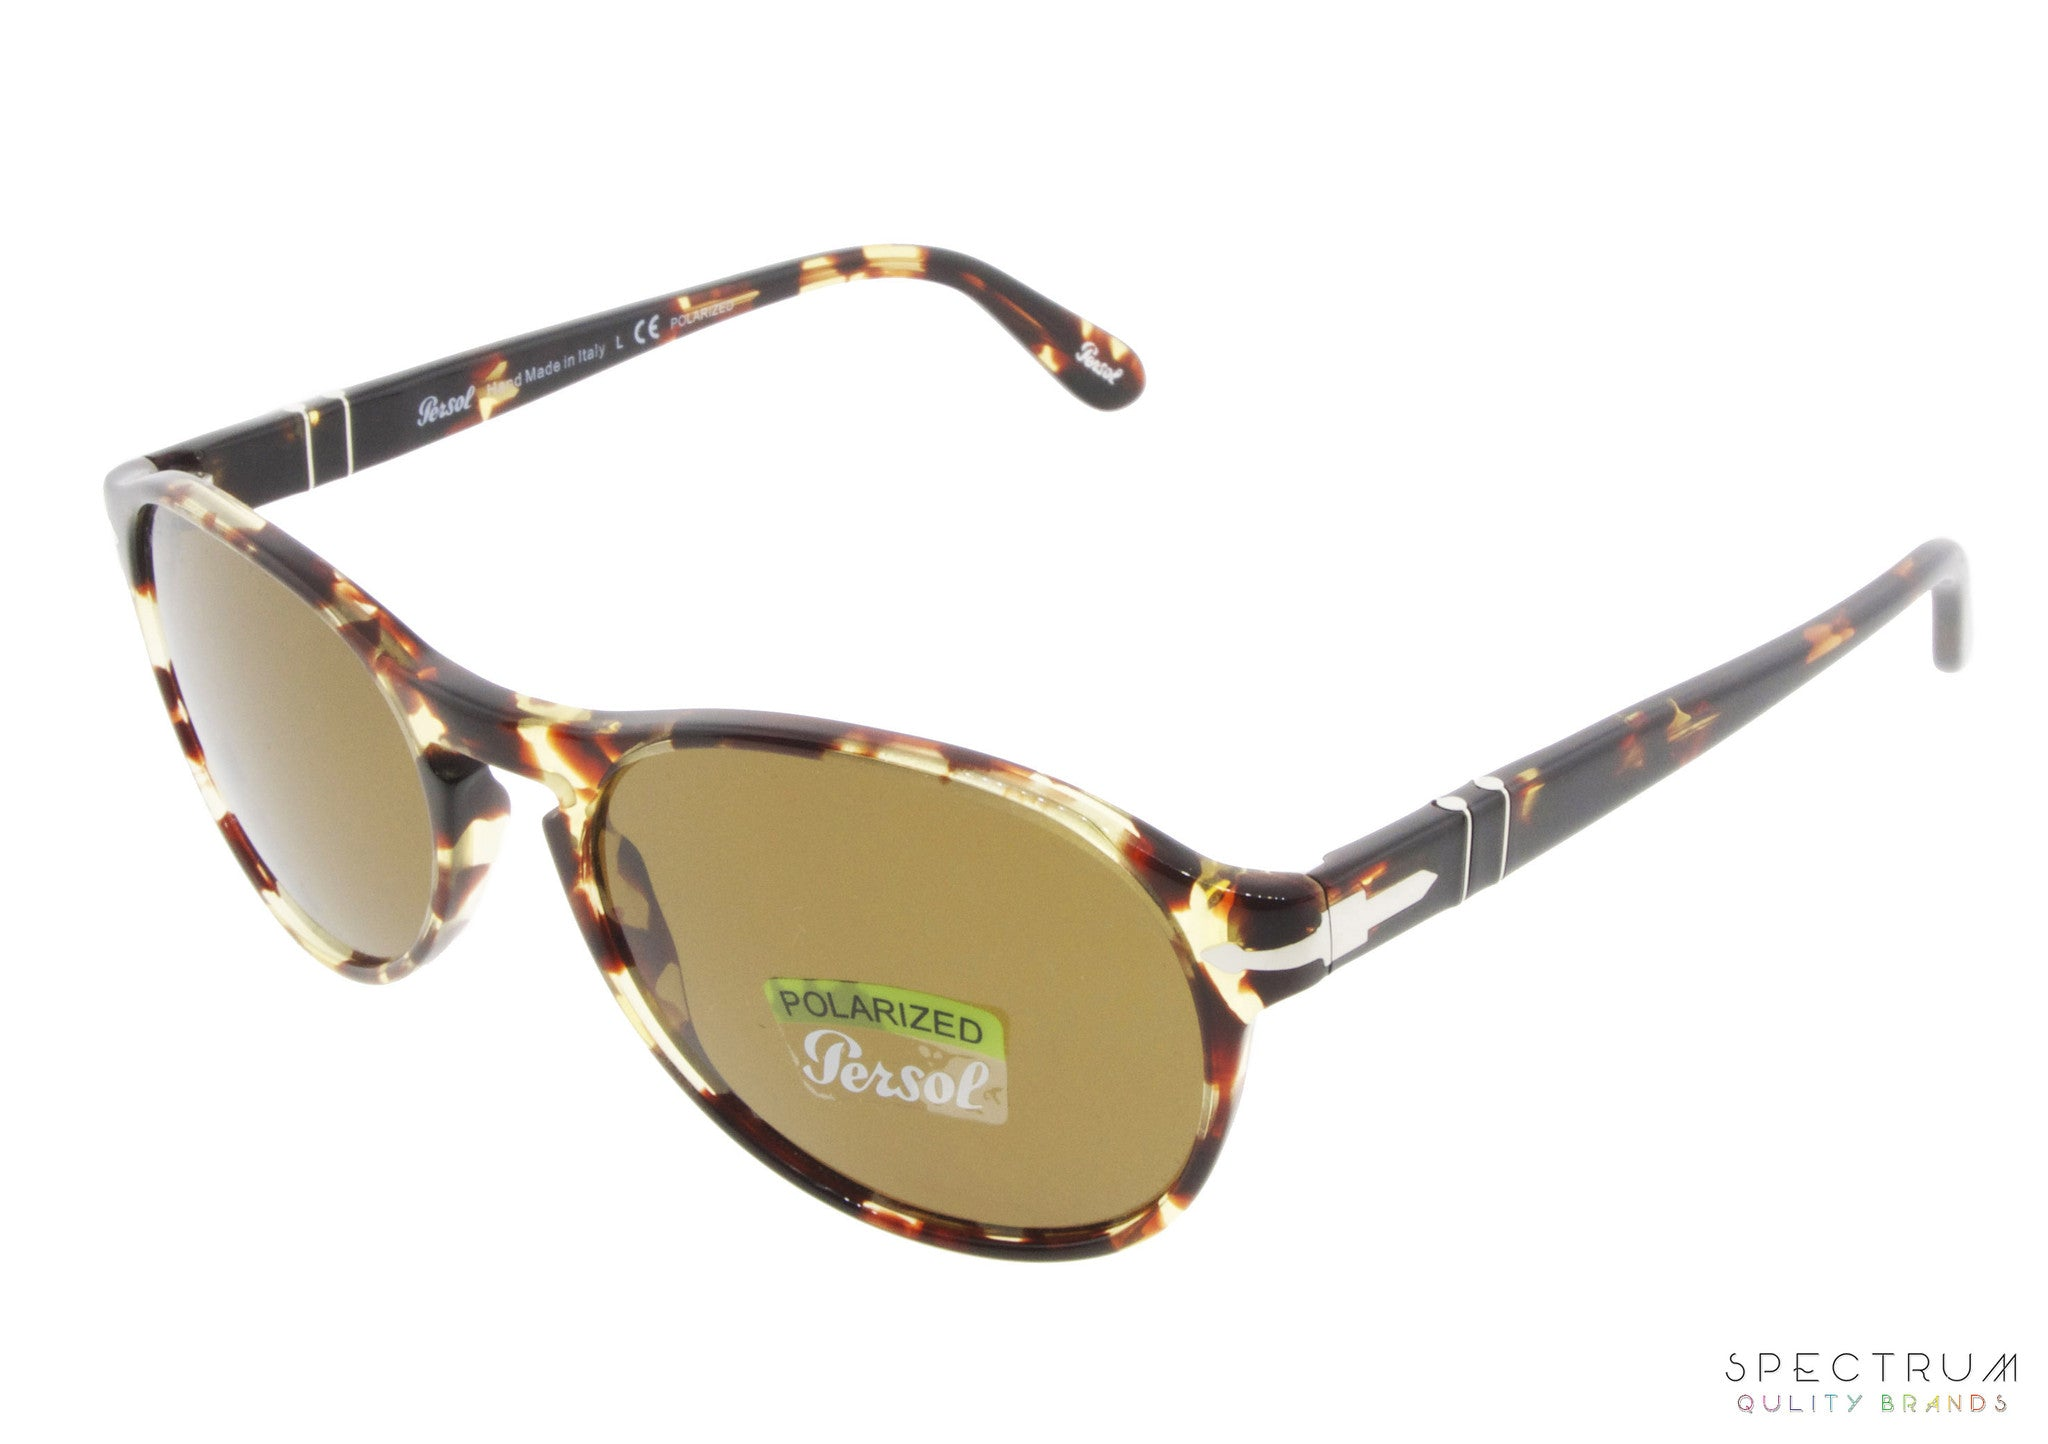 04b09f59d3d Persol Sunglasses 2931S 985 57 Tabacco Virginia with Polarized Brown Lenses  Size 55